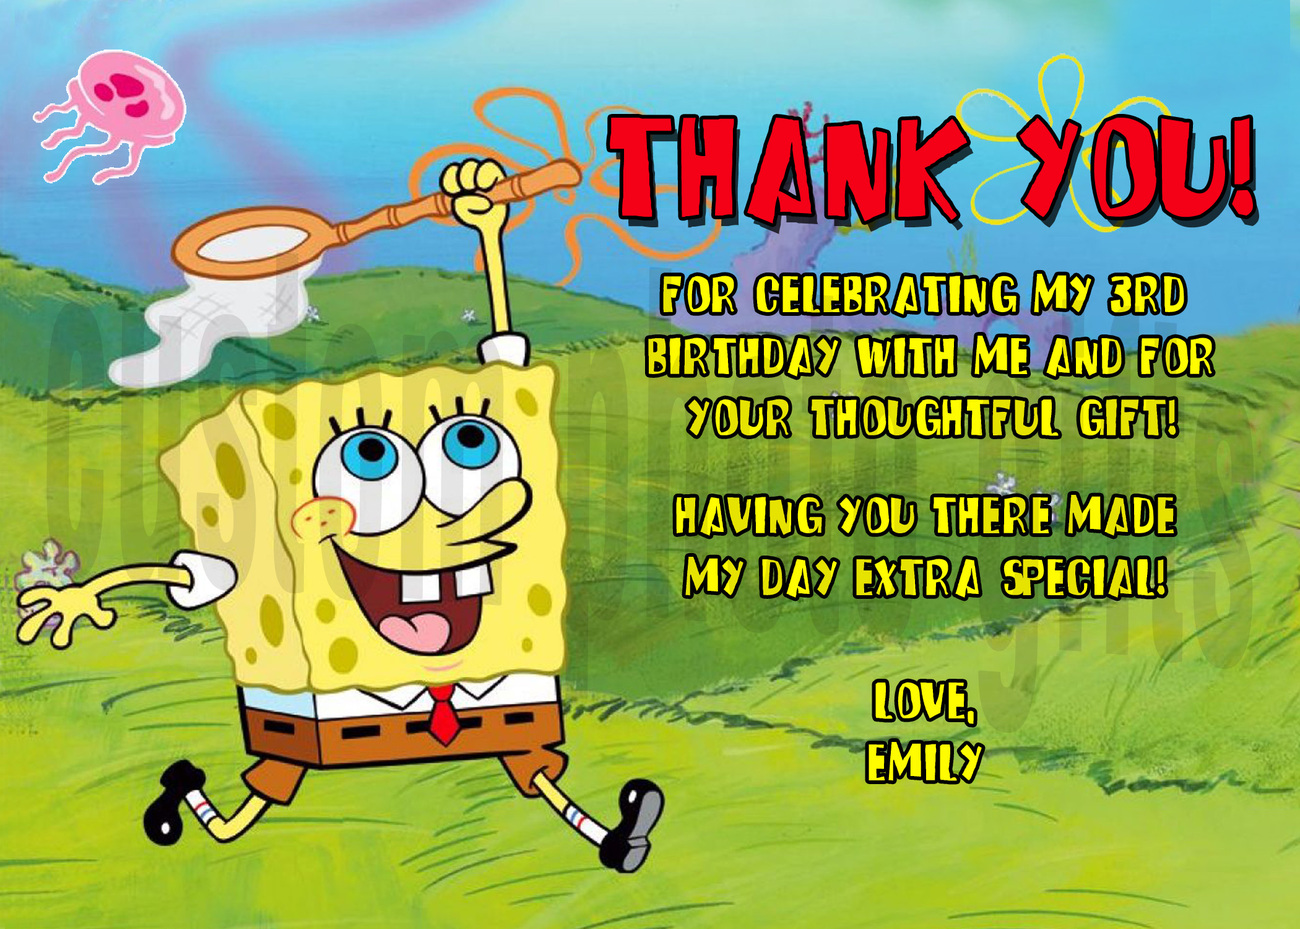 Personalized Spongebob Birthday Invitations is awesome invitations template